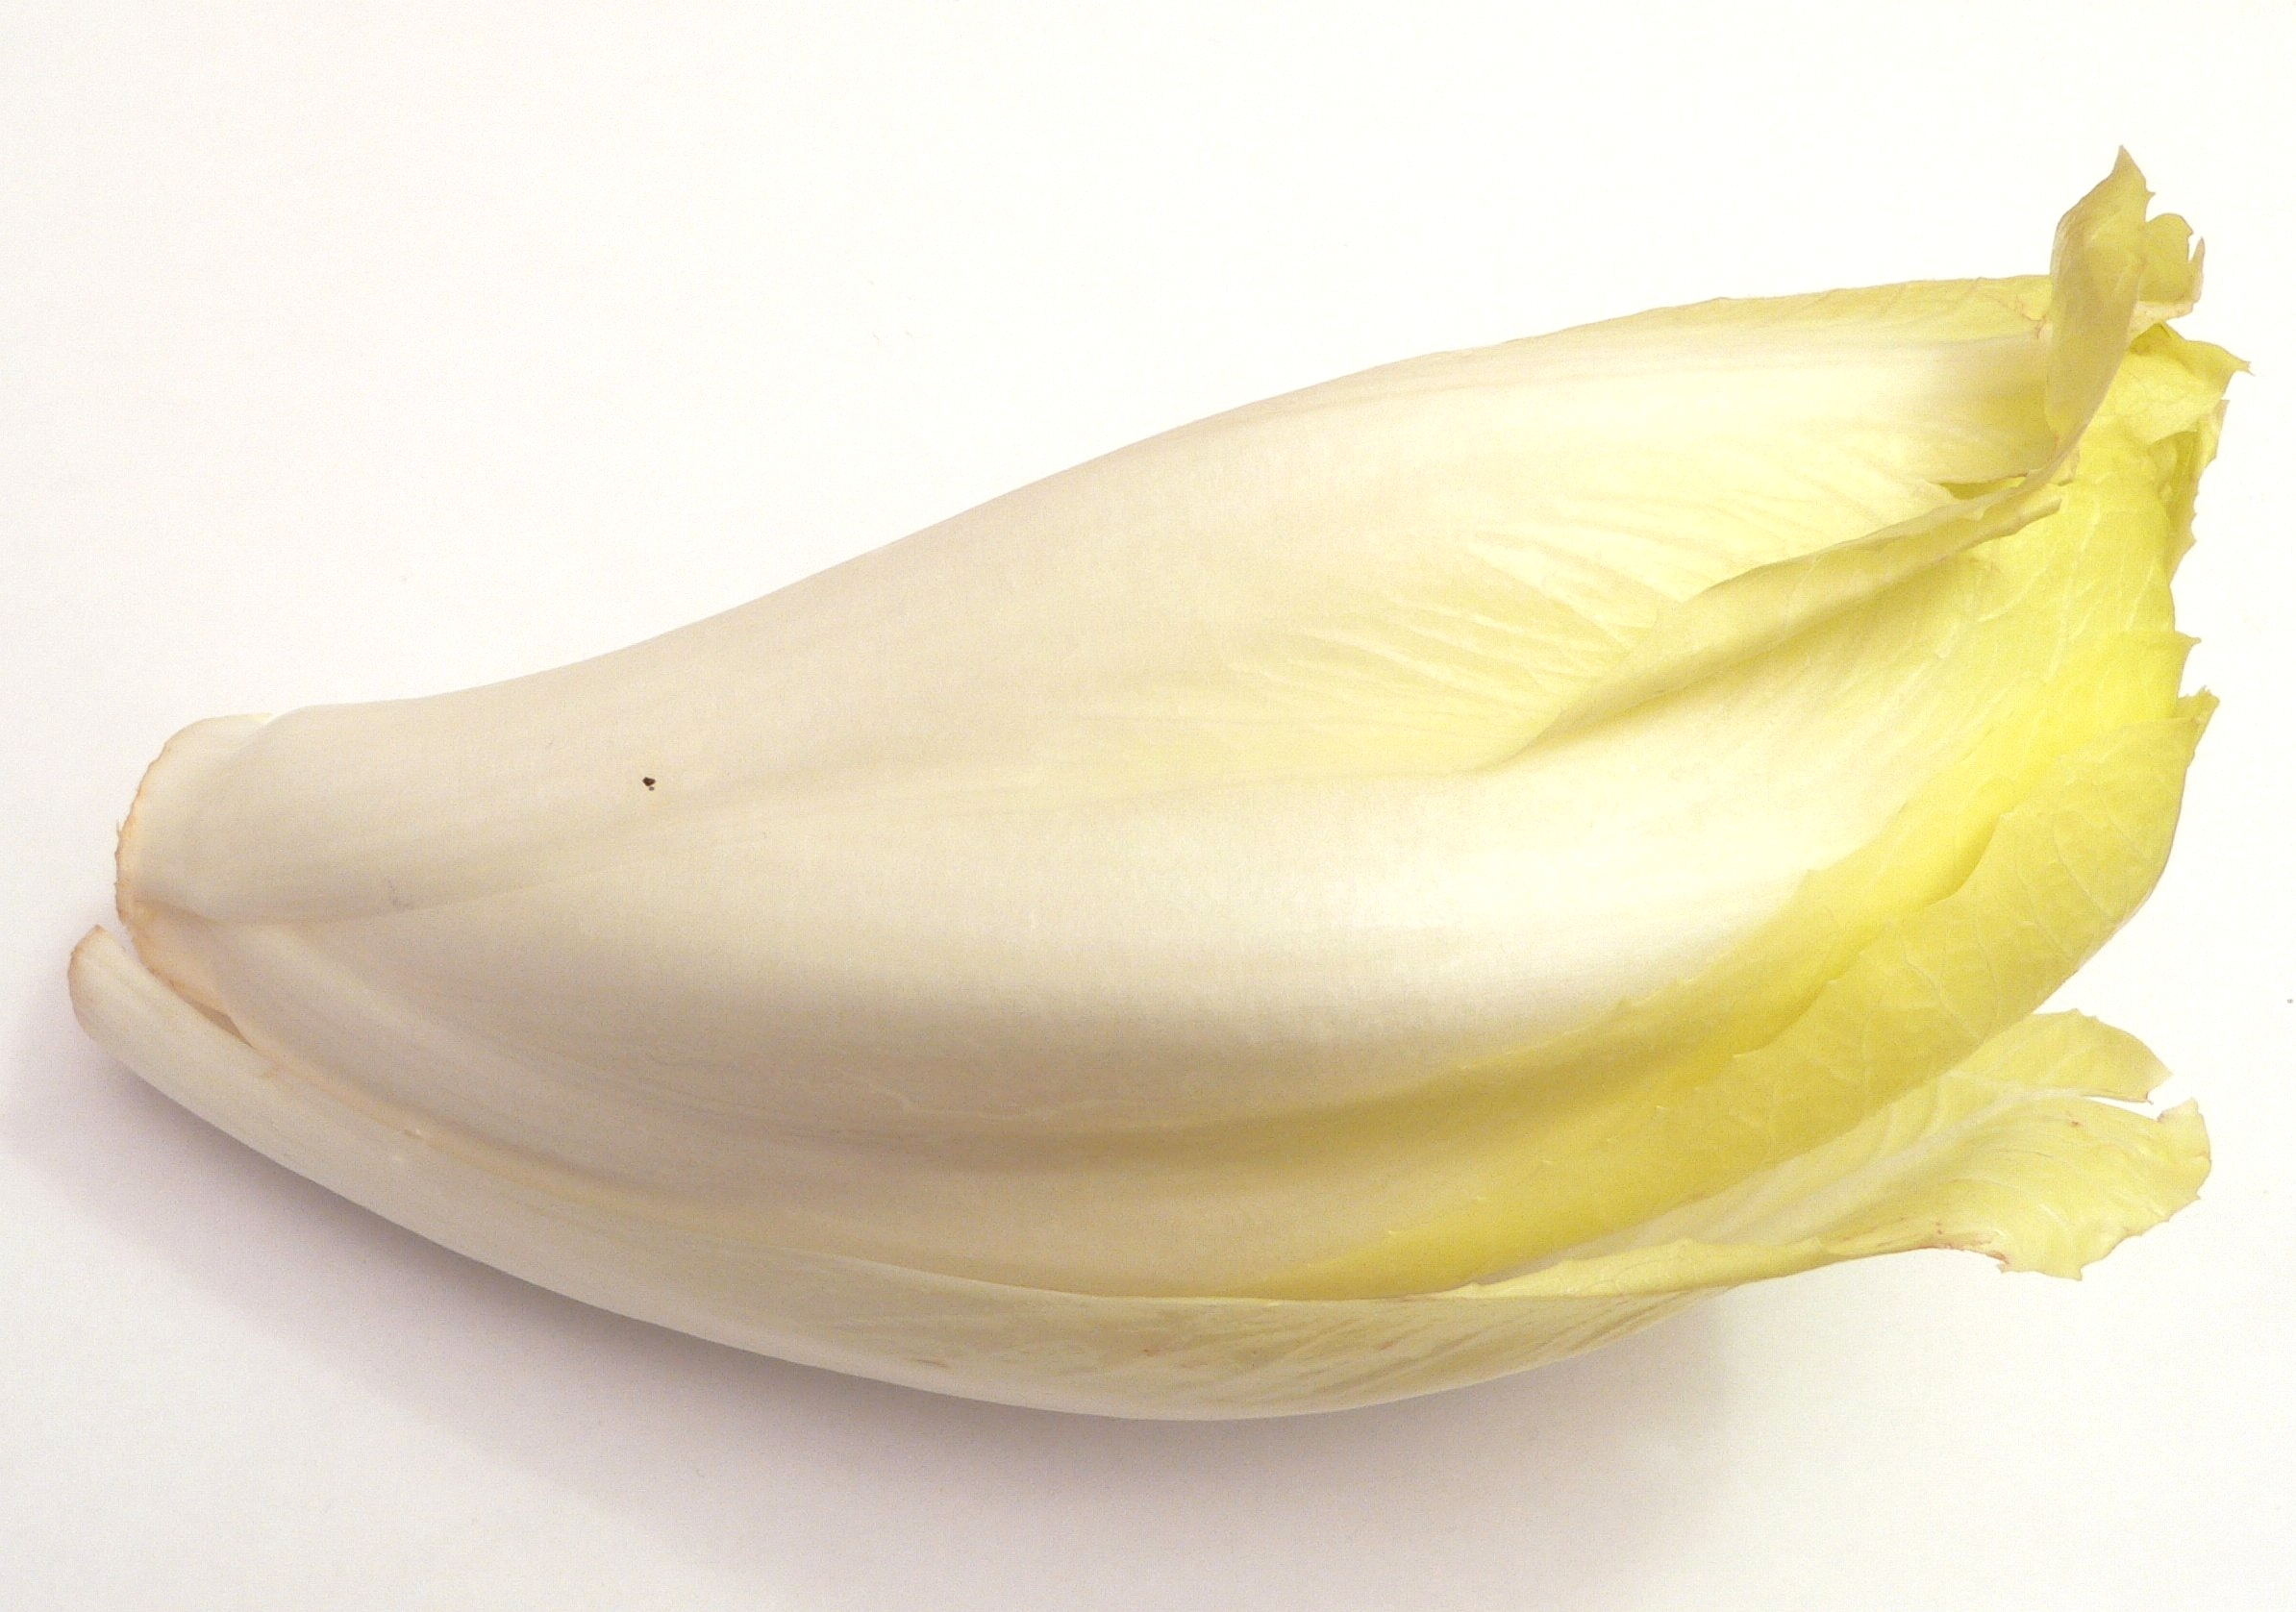 Witlof, chicory, belgian endives, witloof, or what ever you call it in your language